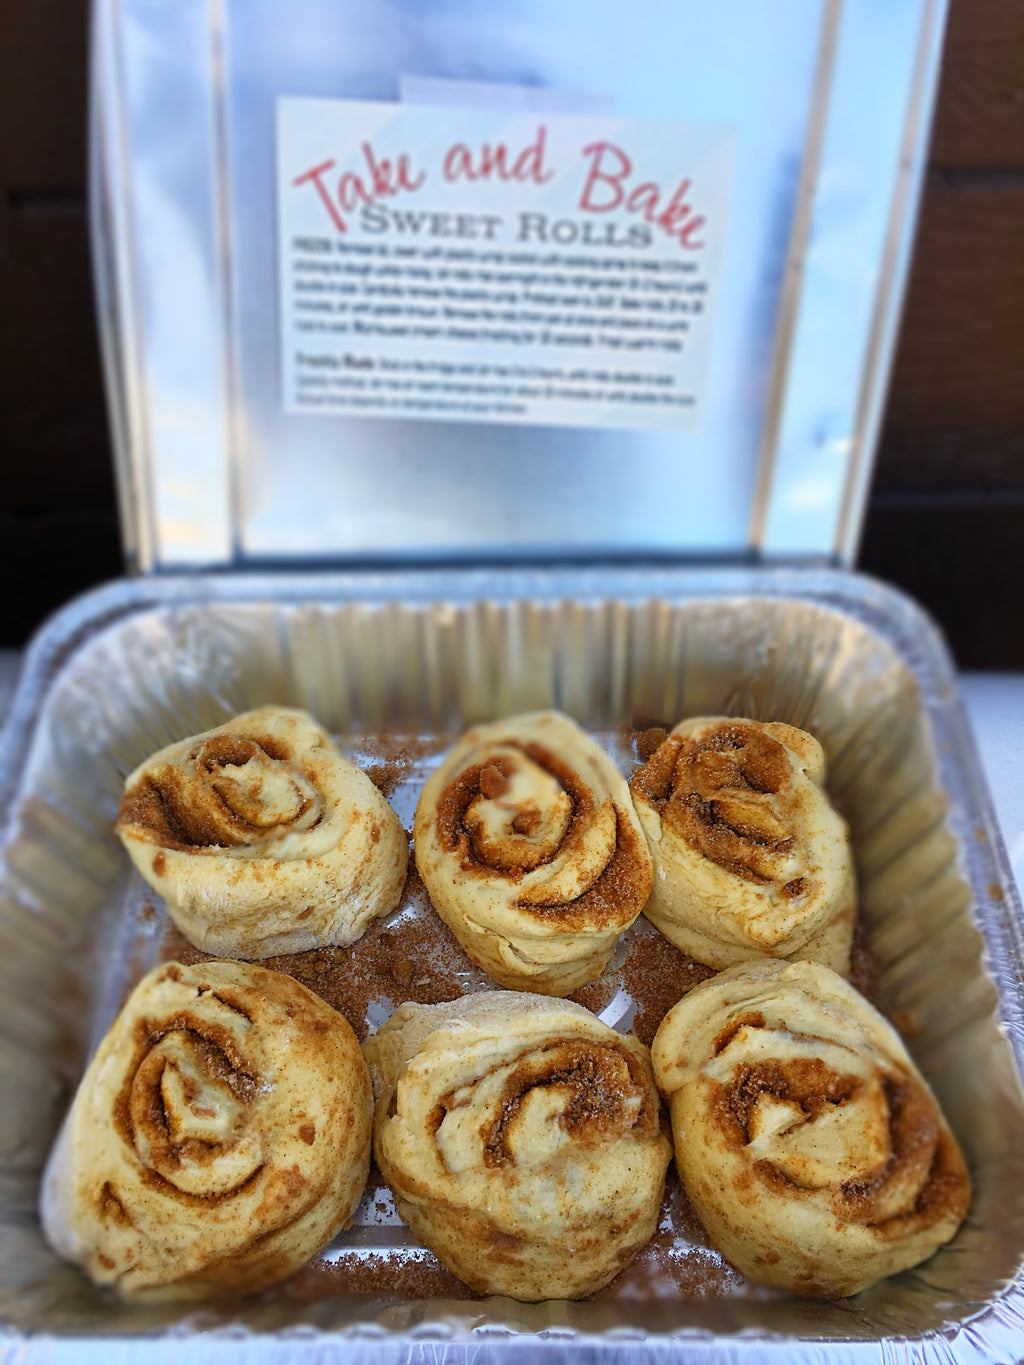 Sweet Rolls (FROZEN Take & Bake) available until April 20th